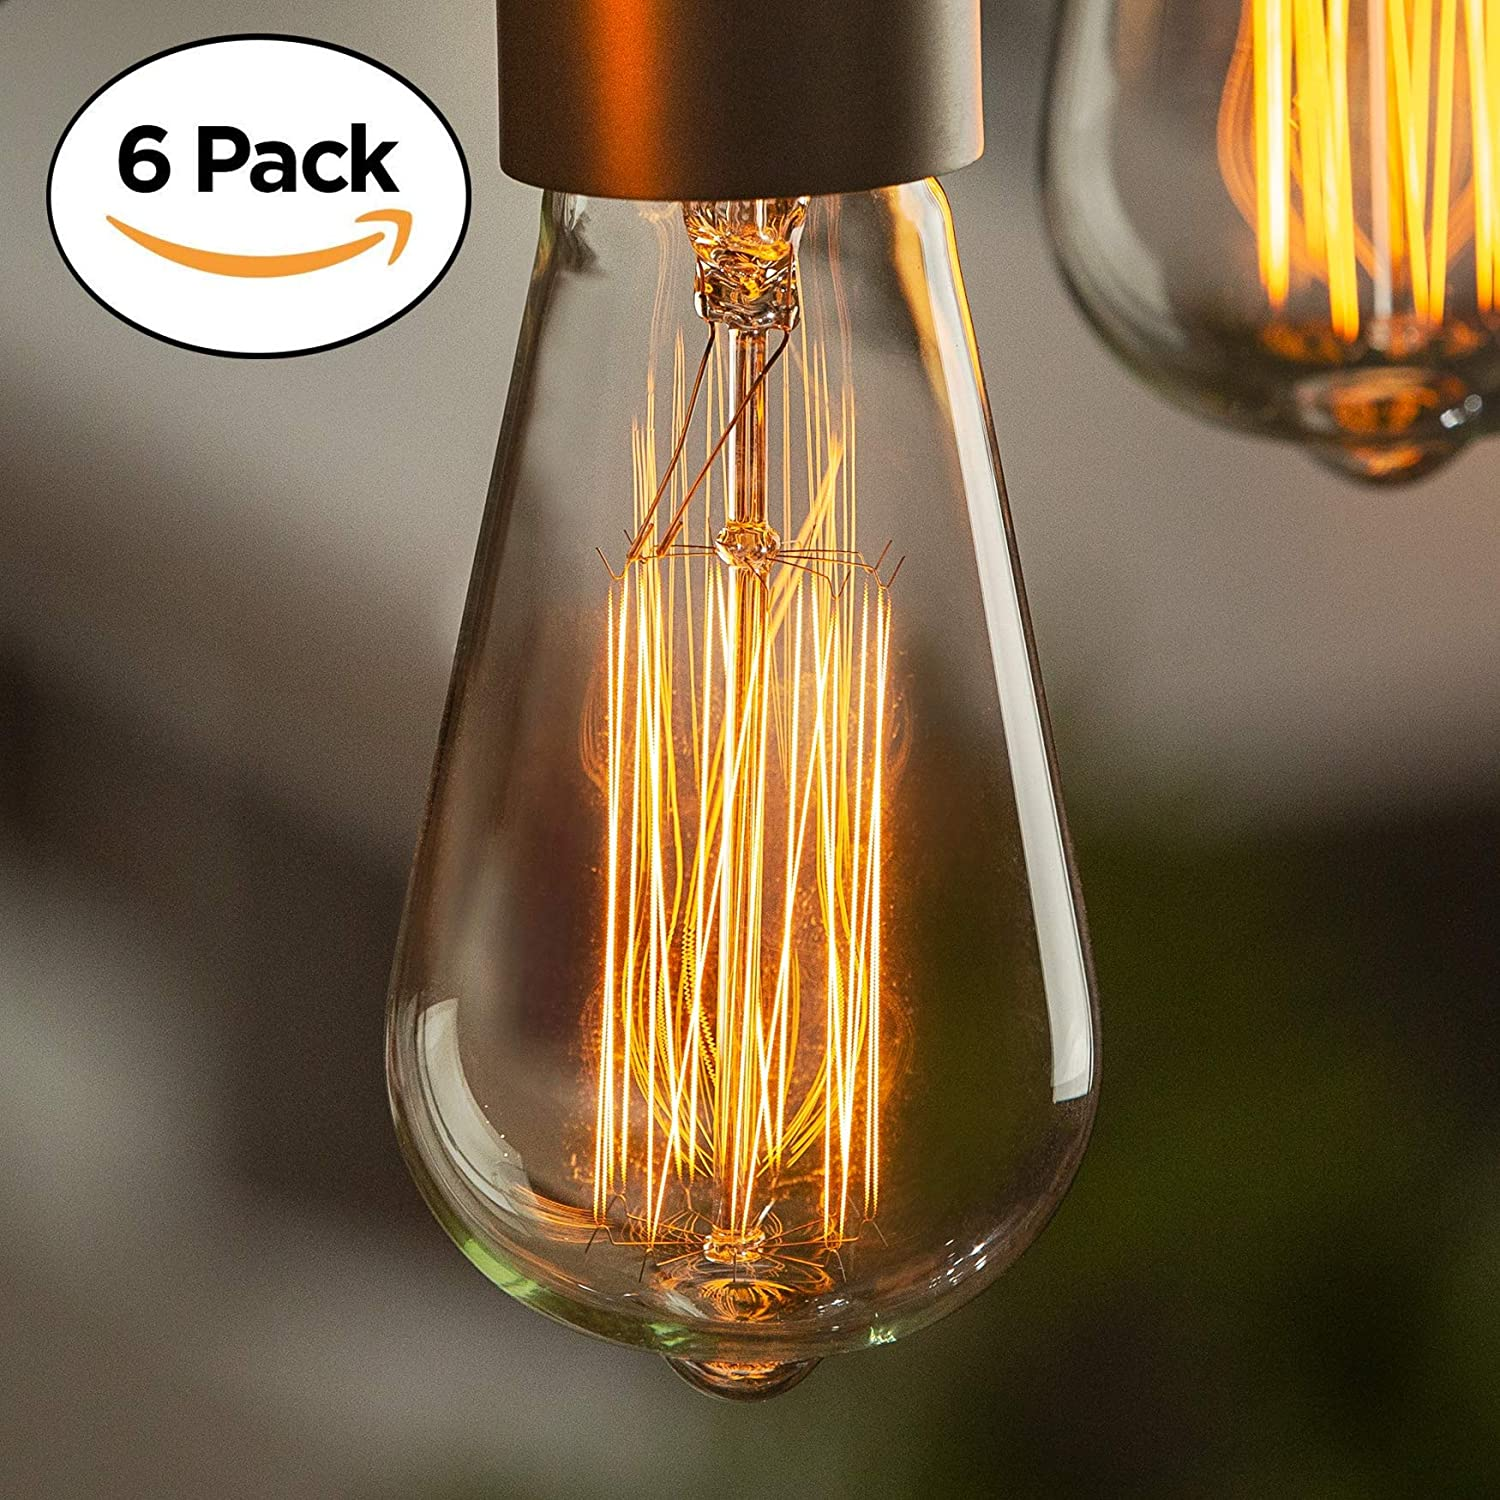 Details About Edison Bulb (6 Pack) | Vintage Incandescent Light Bulbs For Home  Office.